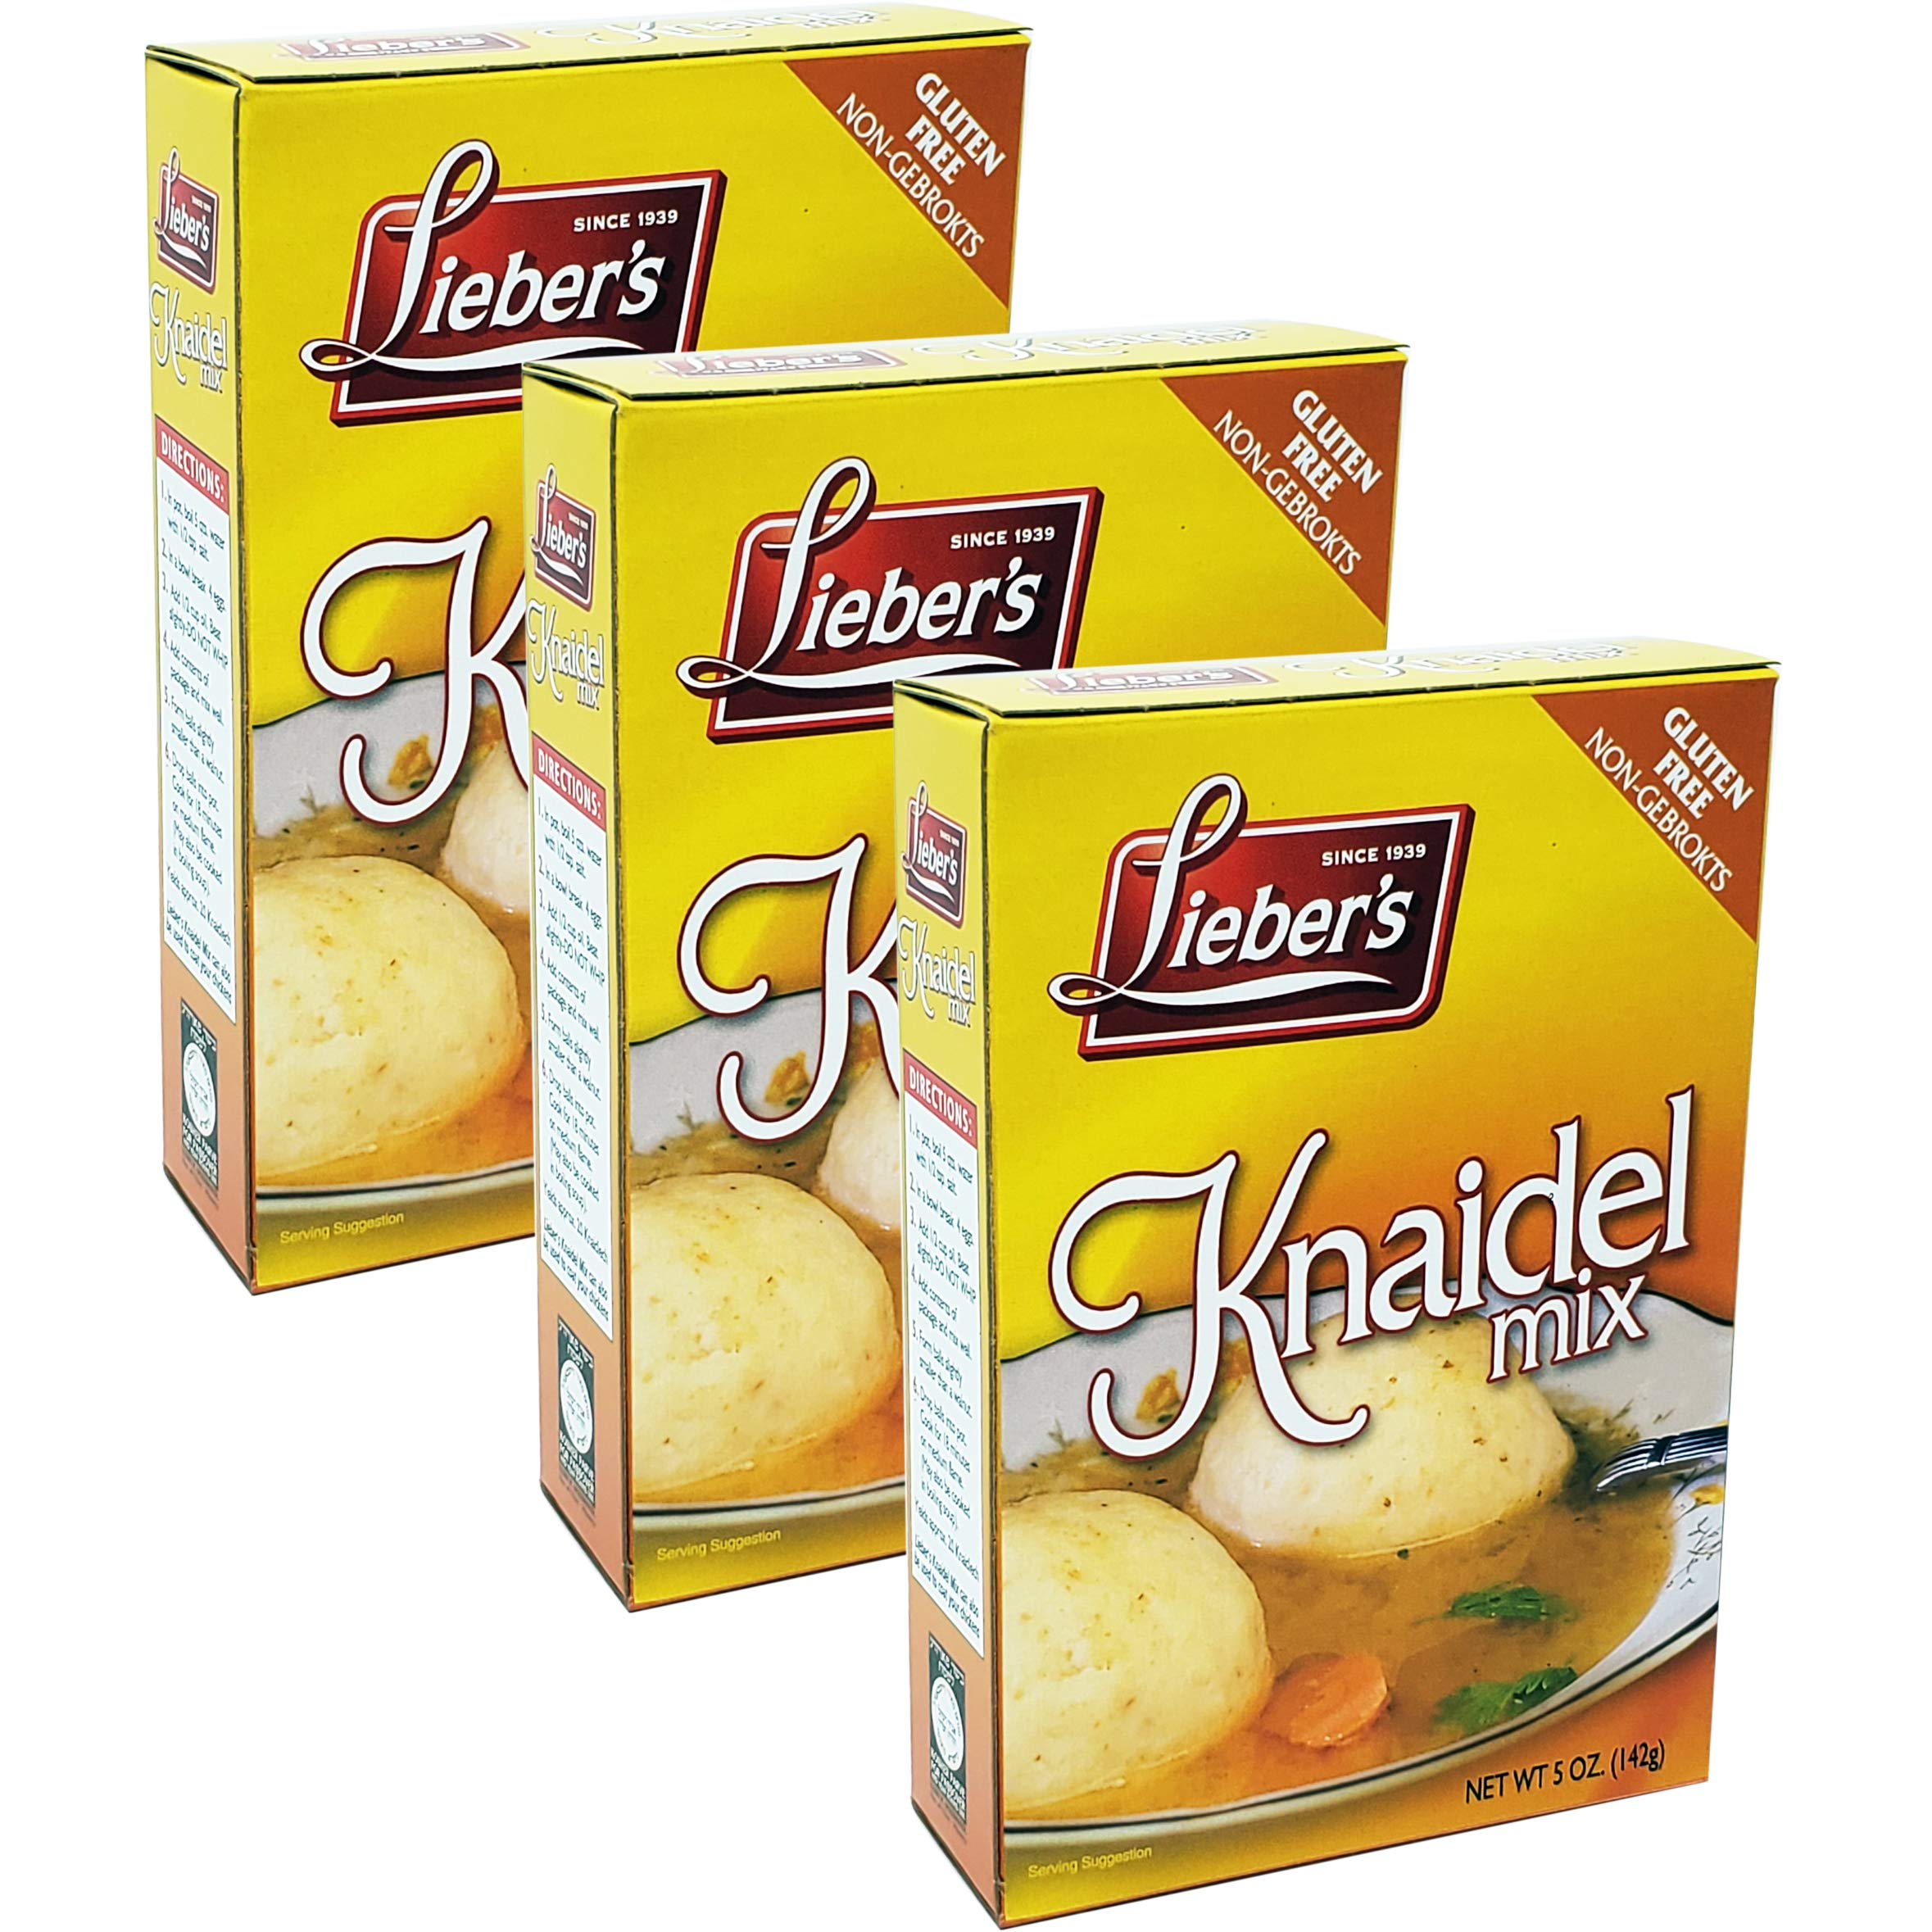 Matzo Ball Knaidel Mix, Gluten Free, Kosher For Passover, 5 Ounce Box (3-Pack) by Lieber's